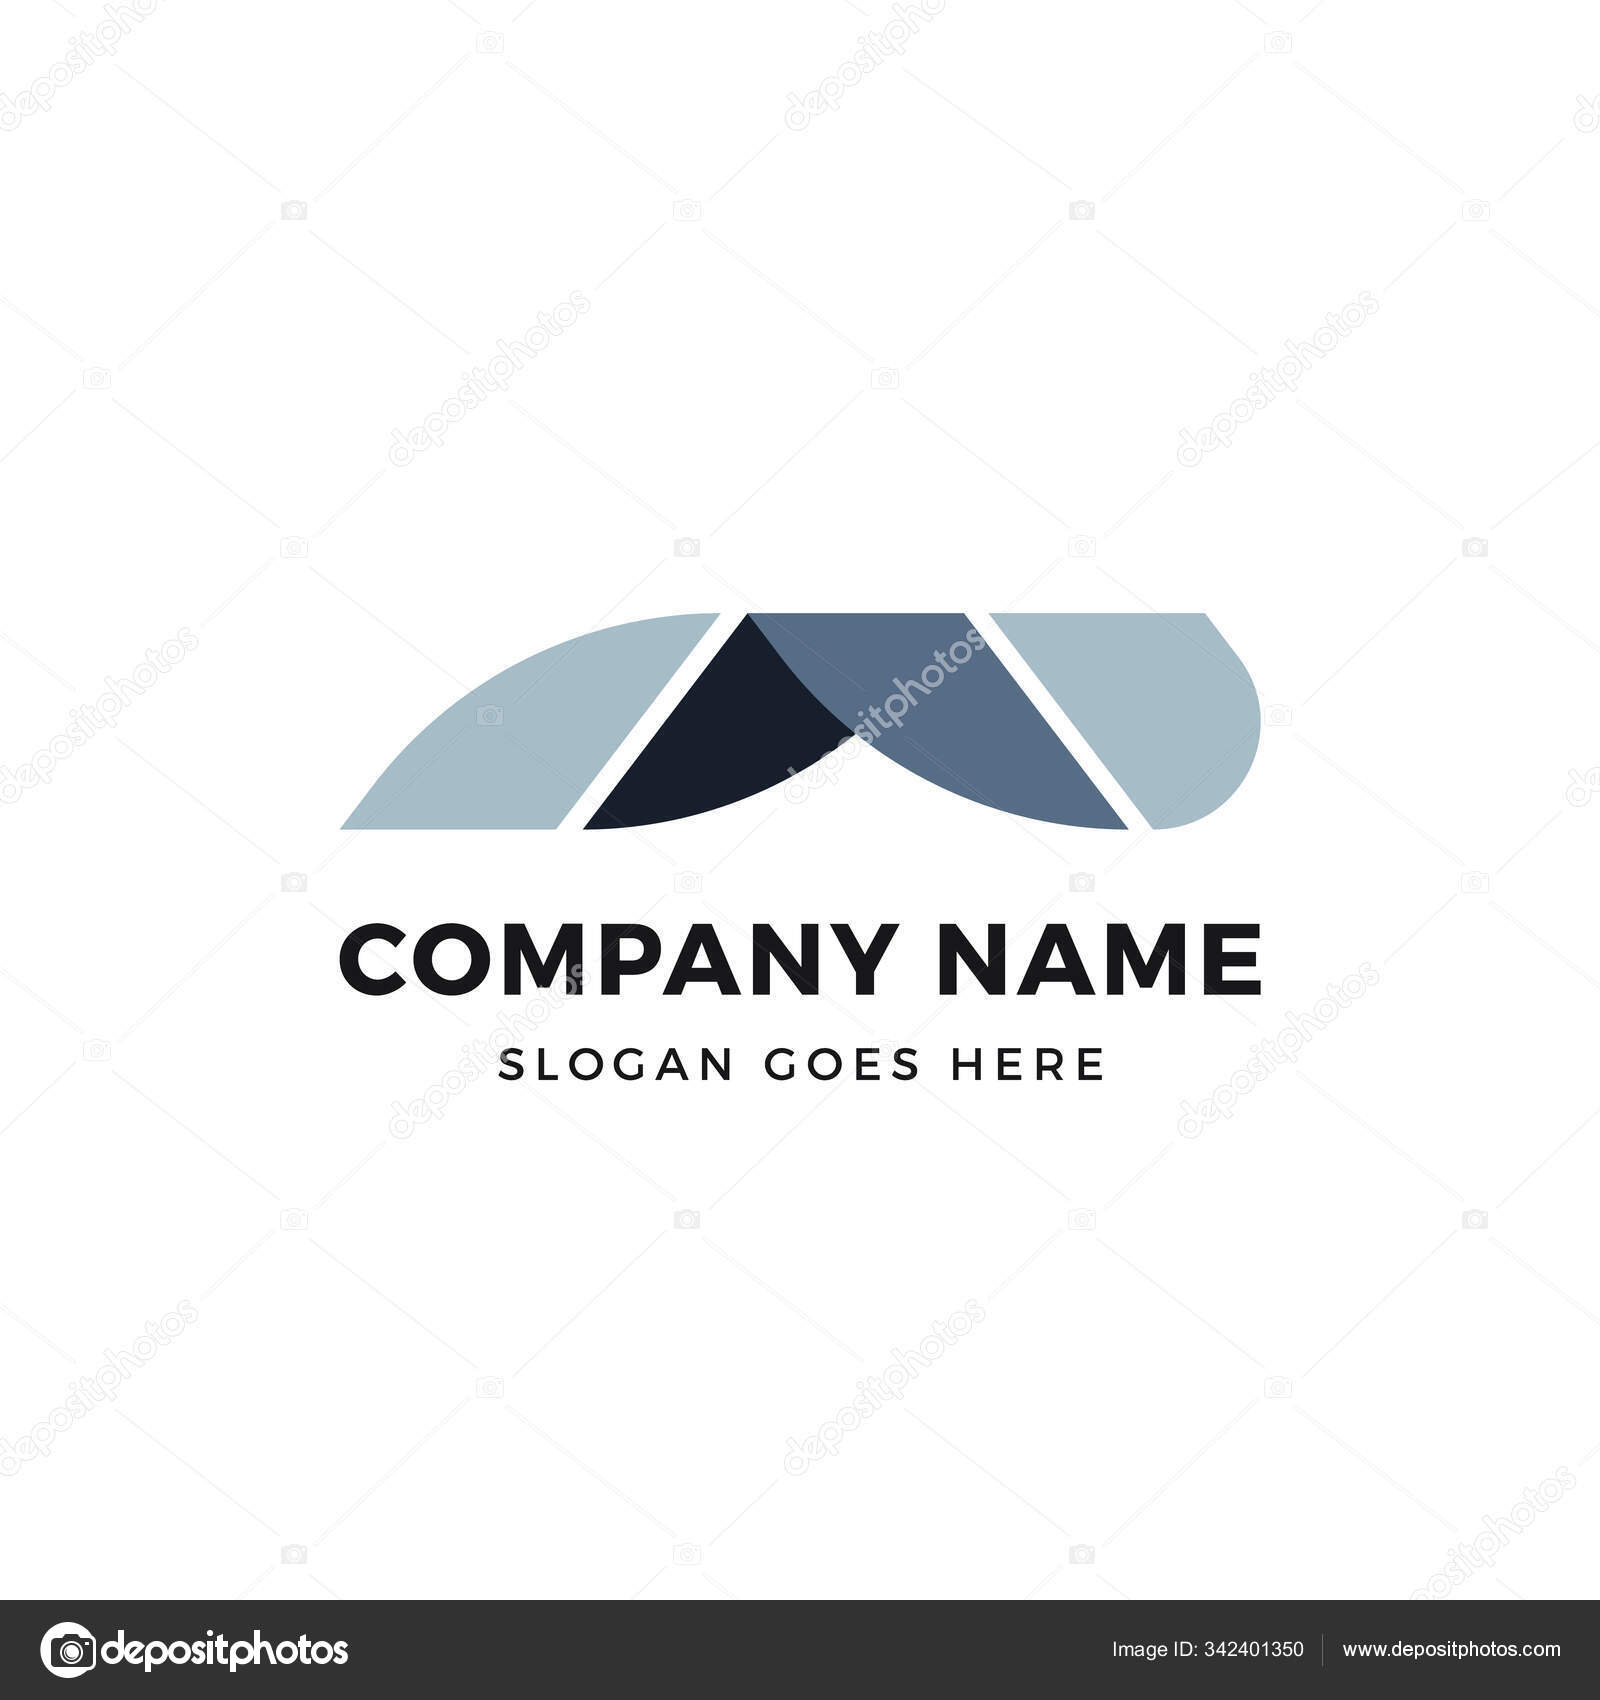 Creative A Letter Roof Vector Logo Icon Design Template Abstract Logotype Concept Element Sign Shape Stock Vector C Graphicgum 342401350